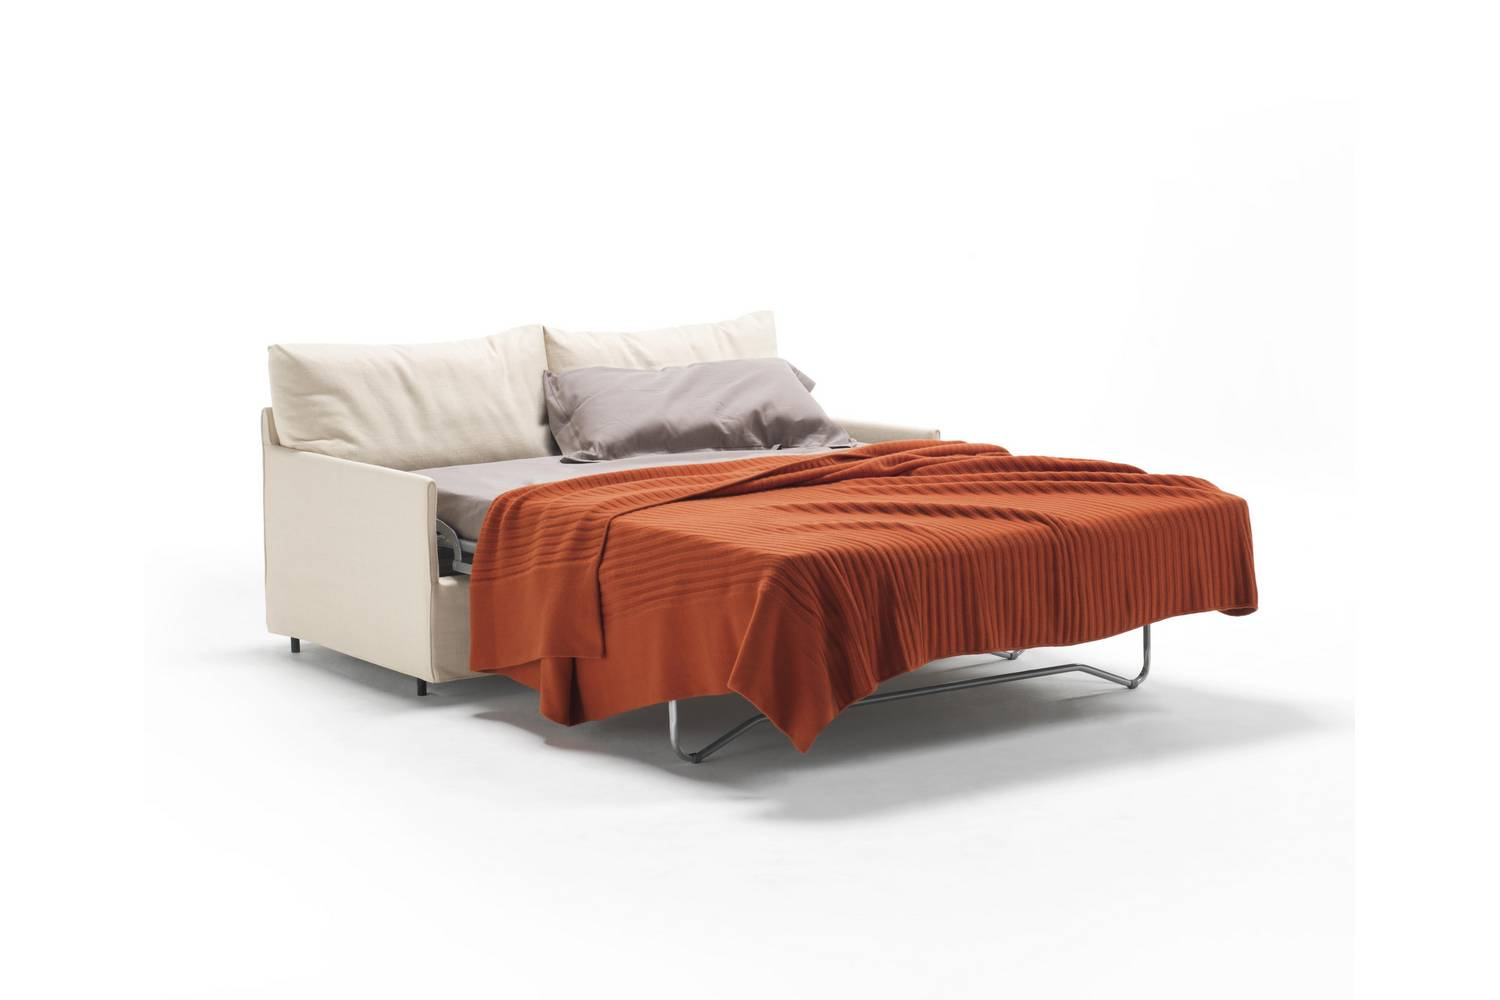 Chemise Bed Piero For DivaniSpace By Lissoni Sofa Living Furniture 4j3LR5A